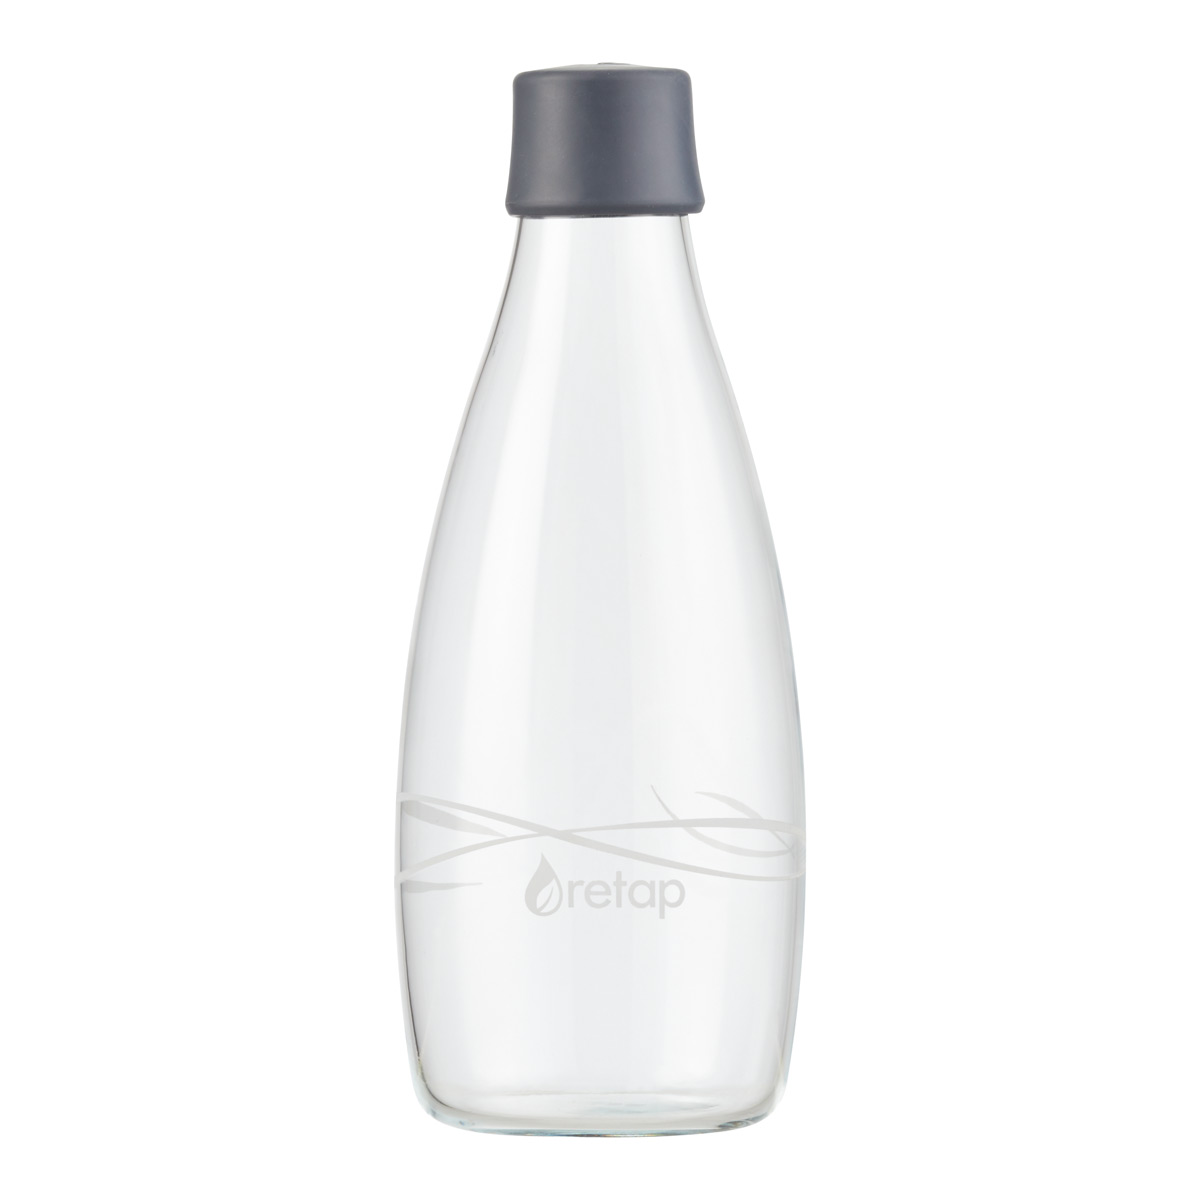 Retap Glass Water Bottle